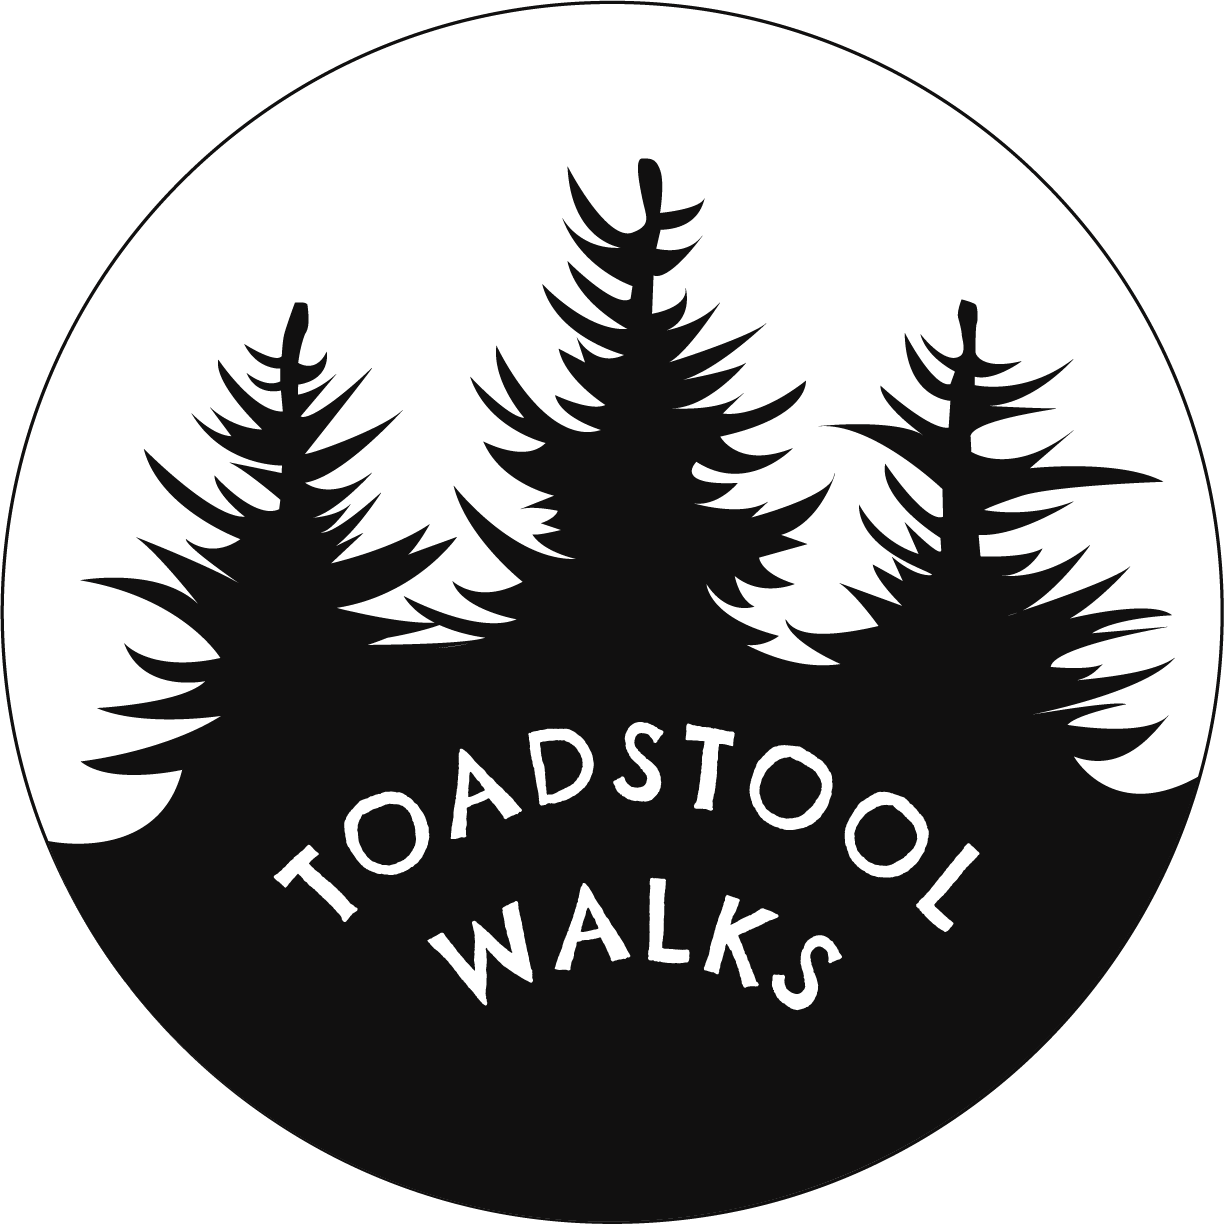 Stay tuned for more details. Please be sure to check out Toadstool Walks website here. -